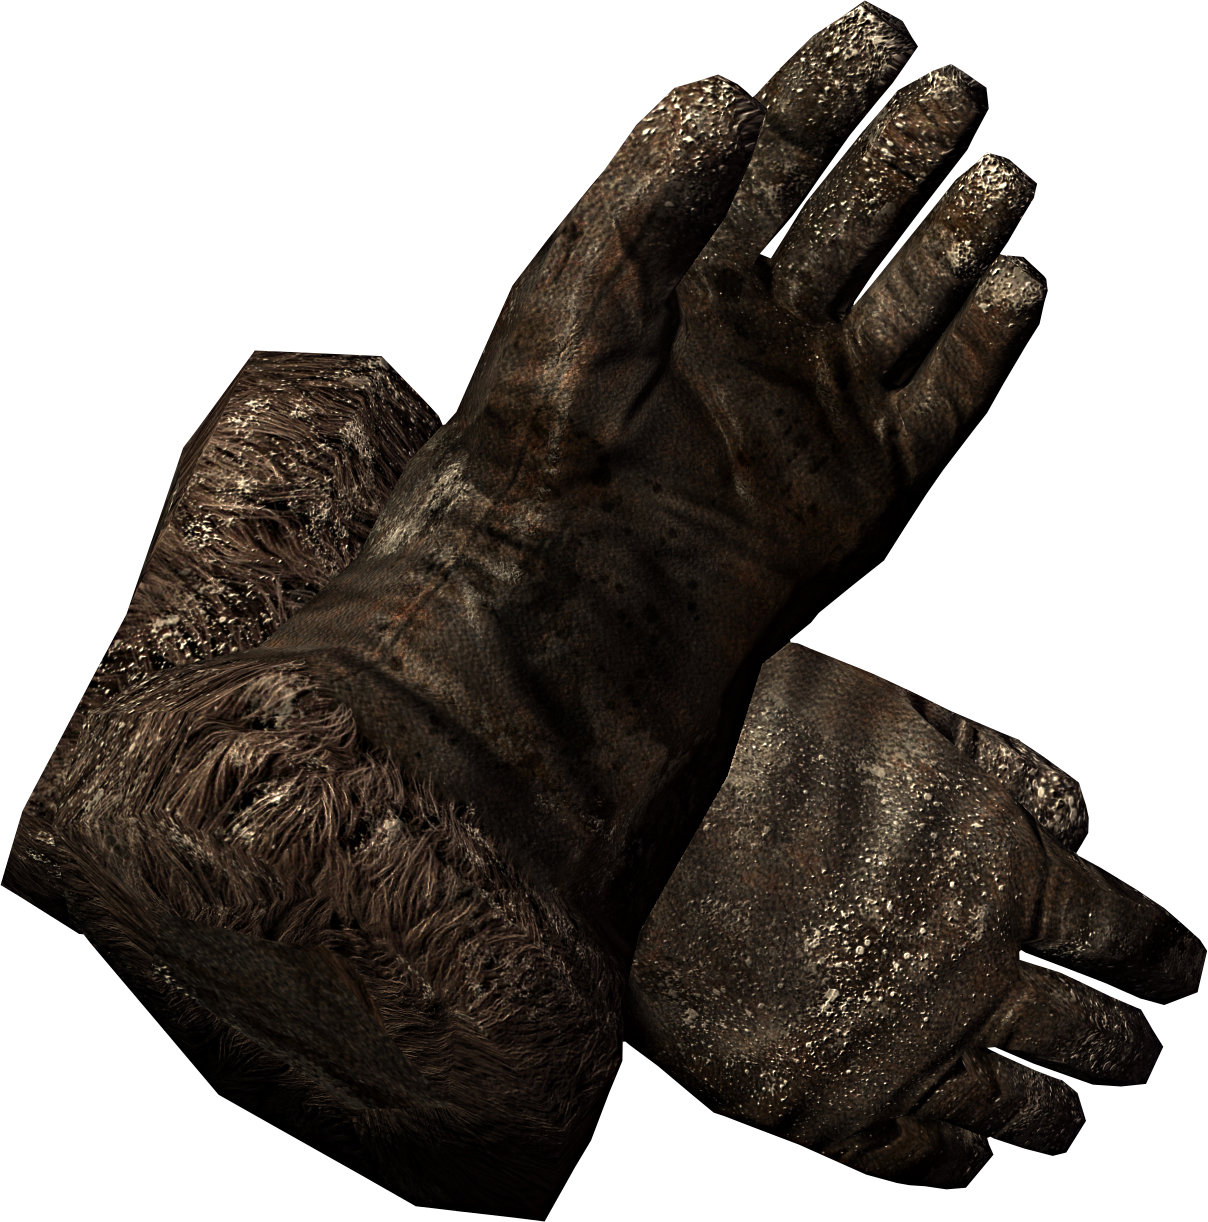 Black gloves skyrim - Black Gloves Skyrim 34